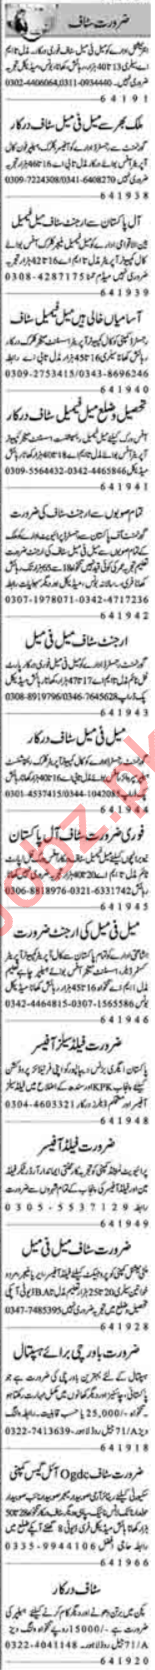 Daily Dunya Miscellaneous Staff Jobs 2019 in Lahore